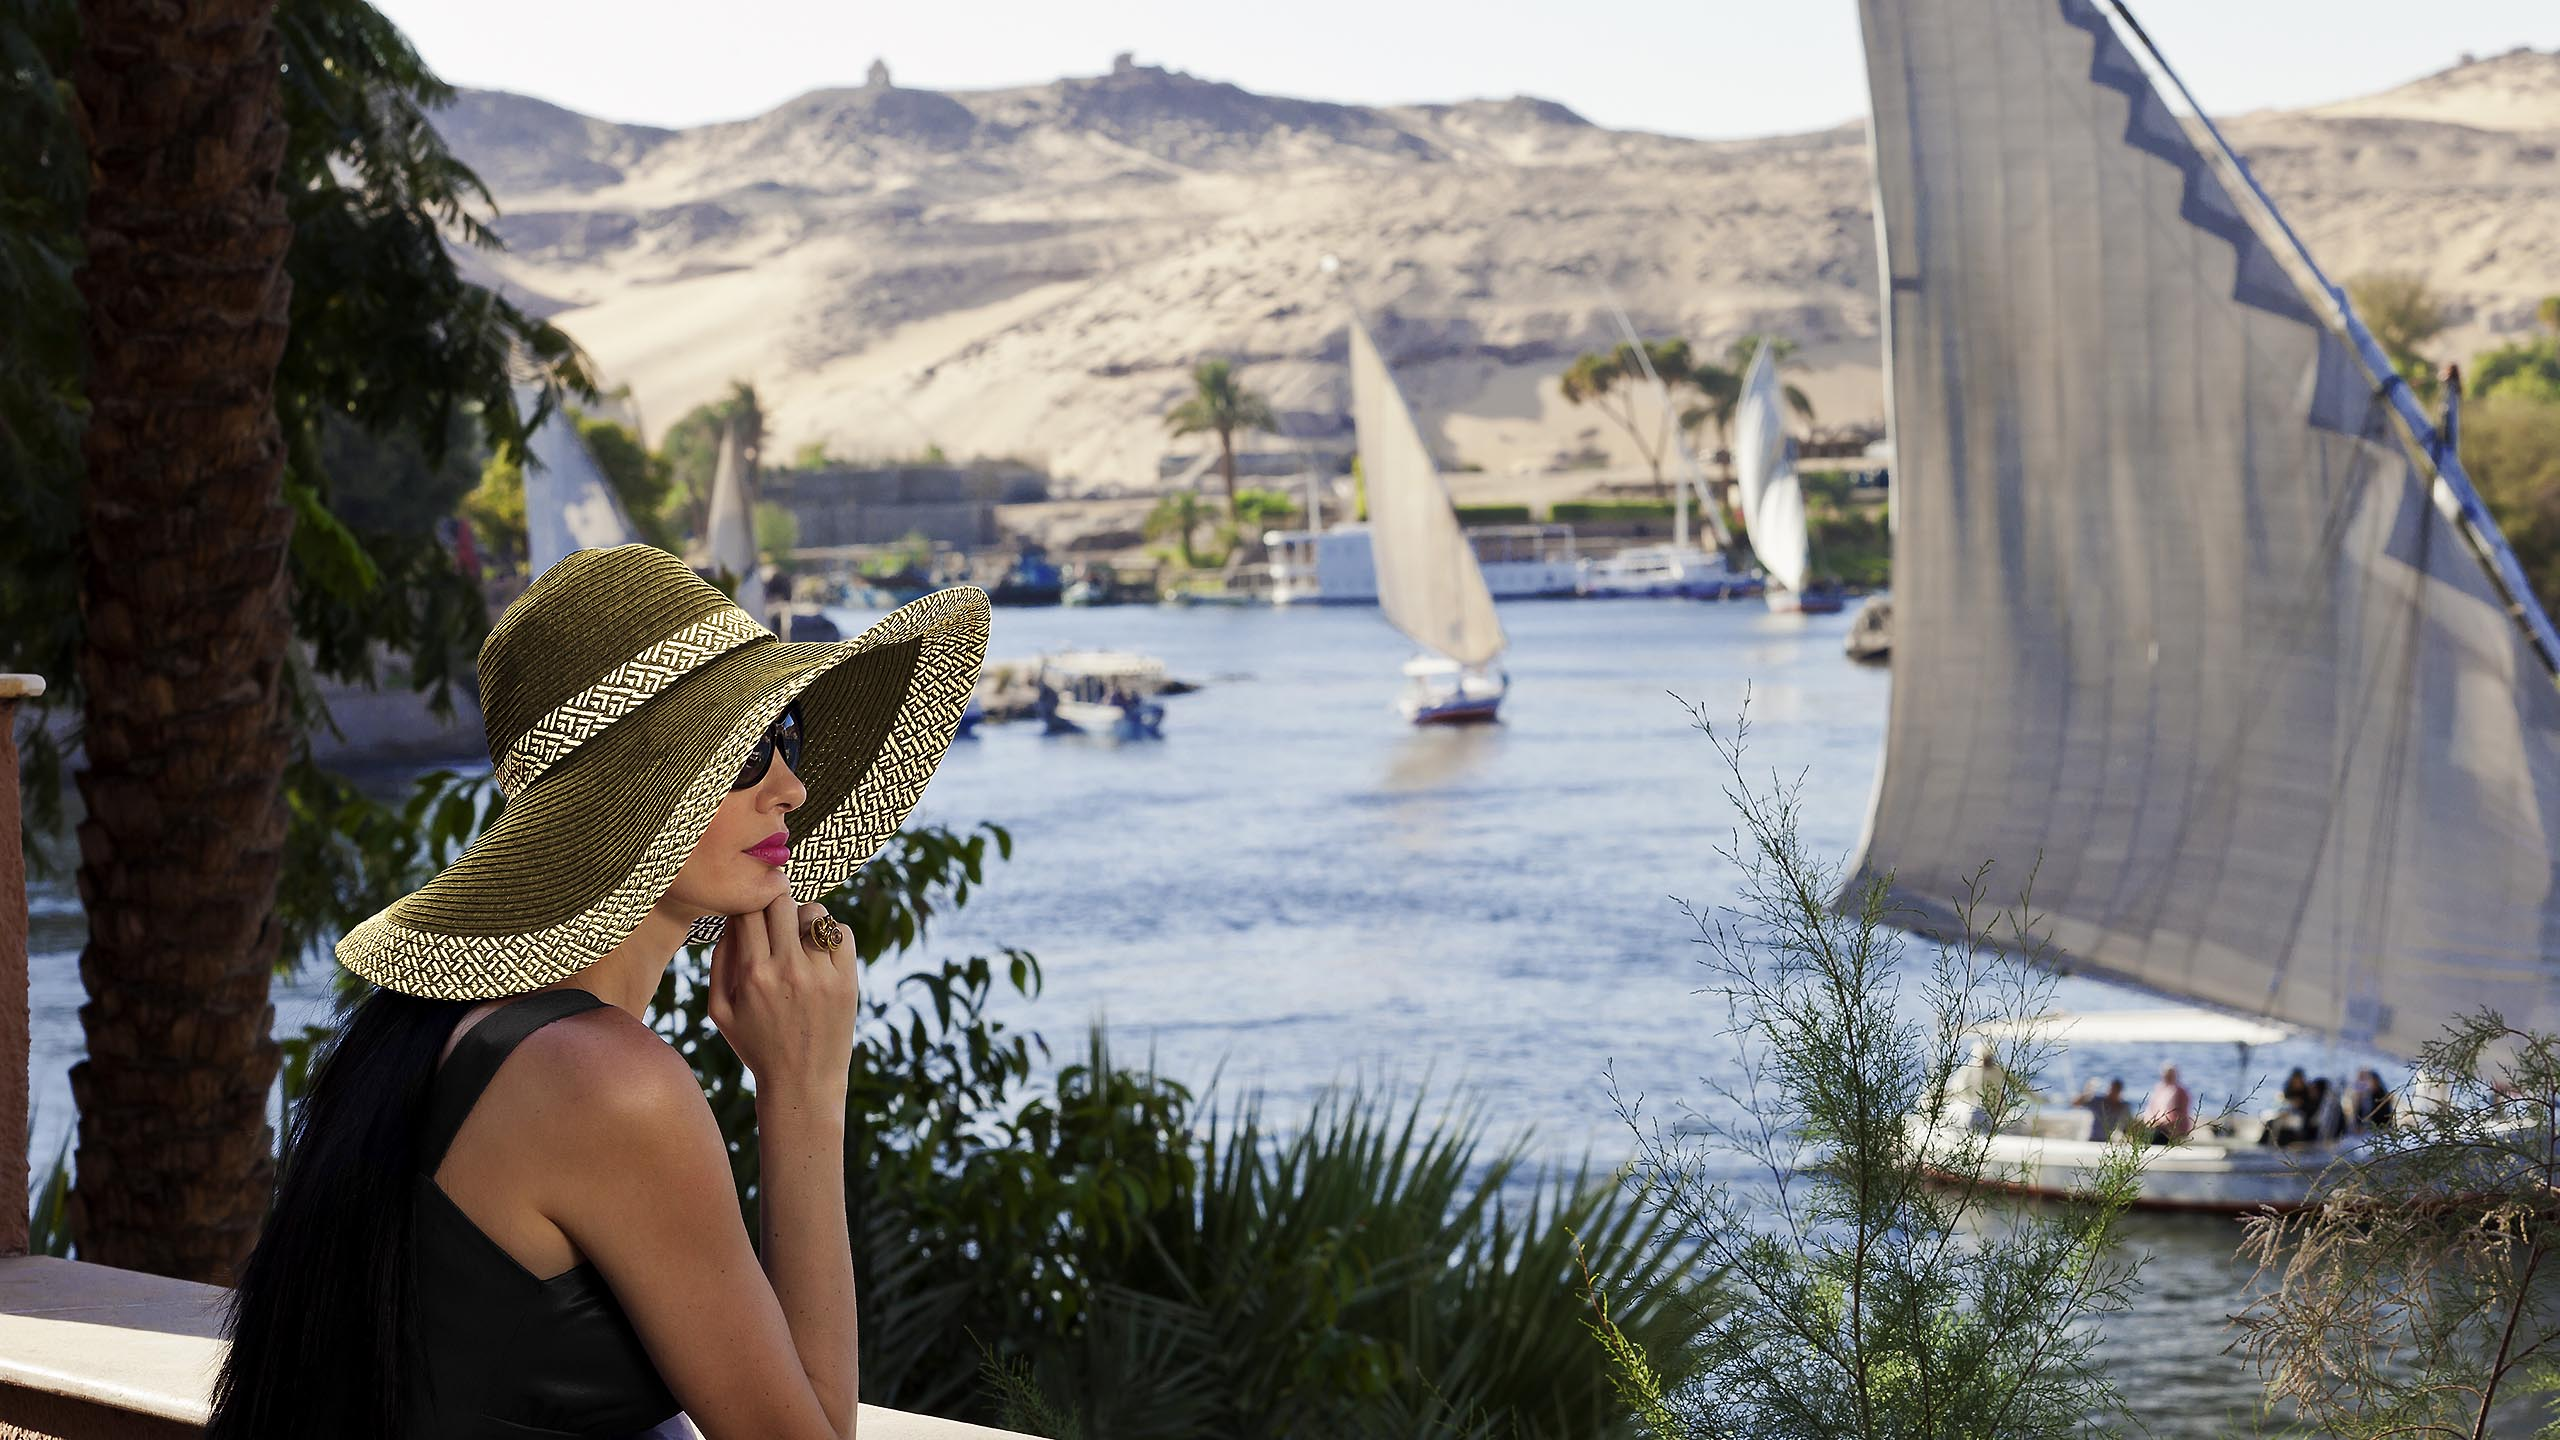 Cairo and Nile Cruise holidays, Aswan, Egypt luxury tours, Luxury egypt tours, deluxe tours egypt